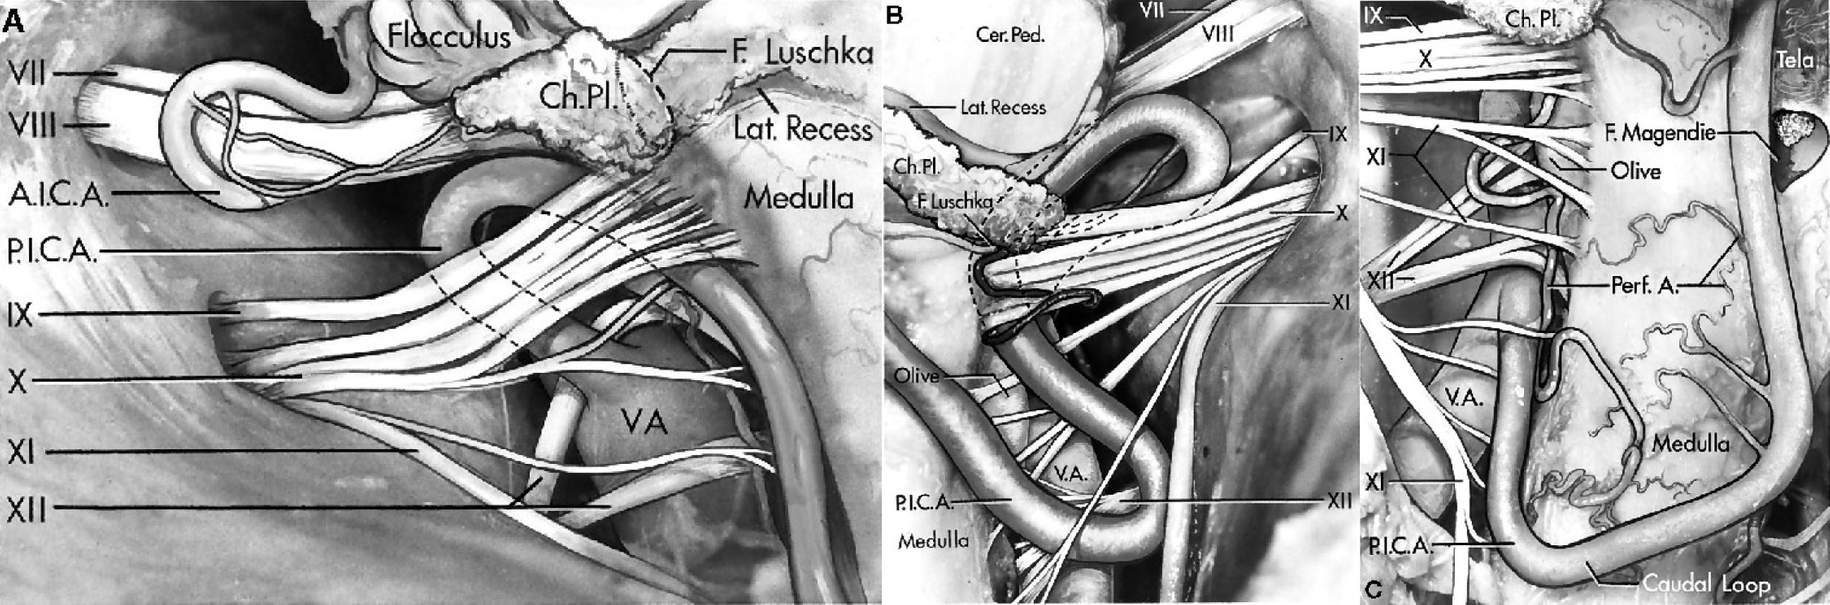 FIGURE 4.27. A, the PICA arises from thevertebral artery, passes between the rootlets of thehypoglossal nerve, and loops superiorly under theglossopharyngeal and vagus nerves before passing posteroinferiorly between the rootlets of the vagus and spinal accessory nerves. The vertebral artery stretches the rootlets of the hypoglossal nerve posteriorly. The AICA loops posterior to the facial and vestibulocochlear nerves. B, a tortuous PICA arises from the vertebral artery and passes rostrally toward the vestibulocochlear and facial nerves. At the level of the vestibulocochlear nerve, it loops inferiorly and descends anterior to the glossopharyngeal and vagus nerves, and passes between the vagus and spinal accessory nerves. The PICA compresses the medulla anterior to the origin of the glossopharyngeal and vagus nerves. The choroid plexus protrudes from the foramen of Luschka posterior to the glossopharyngeal nerve. The cerebellar peduncles are above the lateral recess of the fourth ventricle. C, the vertebral artery displaces and stretches the hypoglossal rootlets so far posteriorly that they intermingle with the rootlets of the spinal accessory nerve. The PICA descends between the rootlets of the spinal accessory nerve. (From, Lister JR, Rhoton AL Jr, Matsushima T, Peace DA: Microsurgical anatomy of the posterior inferior cerebellar artery. Neurosurgery 10: 170–199, 1982 [24].) A., artery; A.I.C.A., anteroinferior cerebellar artery; Cer., cerebellar; Ch. Pl., choroid plexus; F., foramen; Lat., lateral; Ped., peduncle; Perf., perforating; P.I.C.A., posteroinferior cerebellar artery; V.A., vertebral artery.